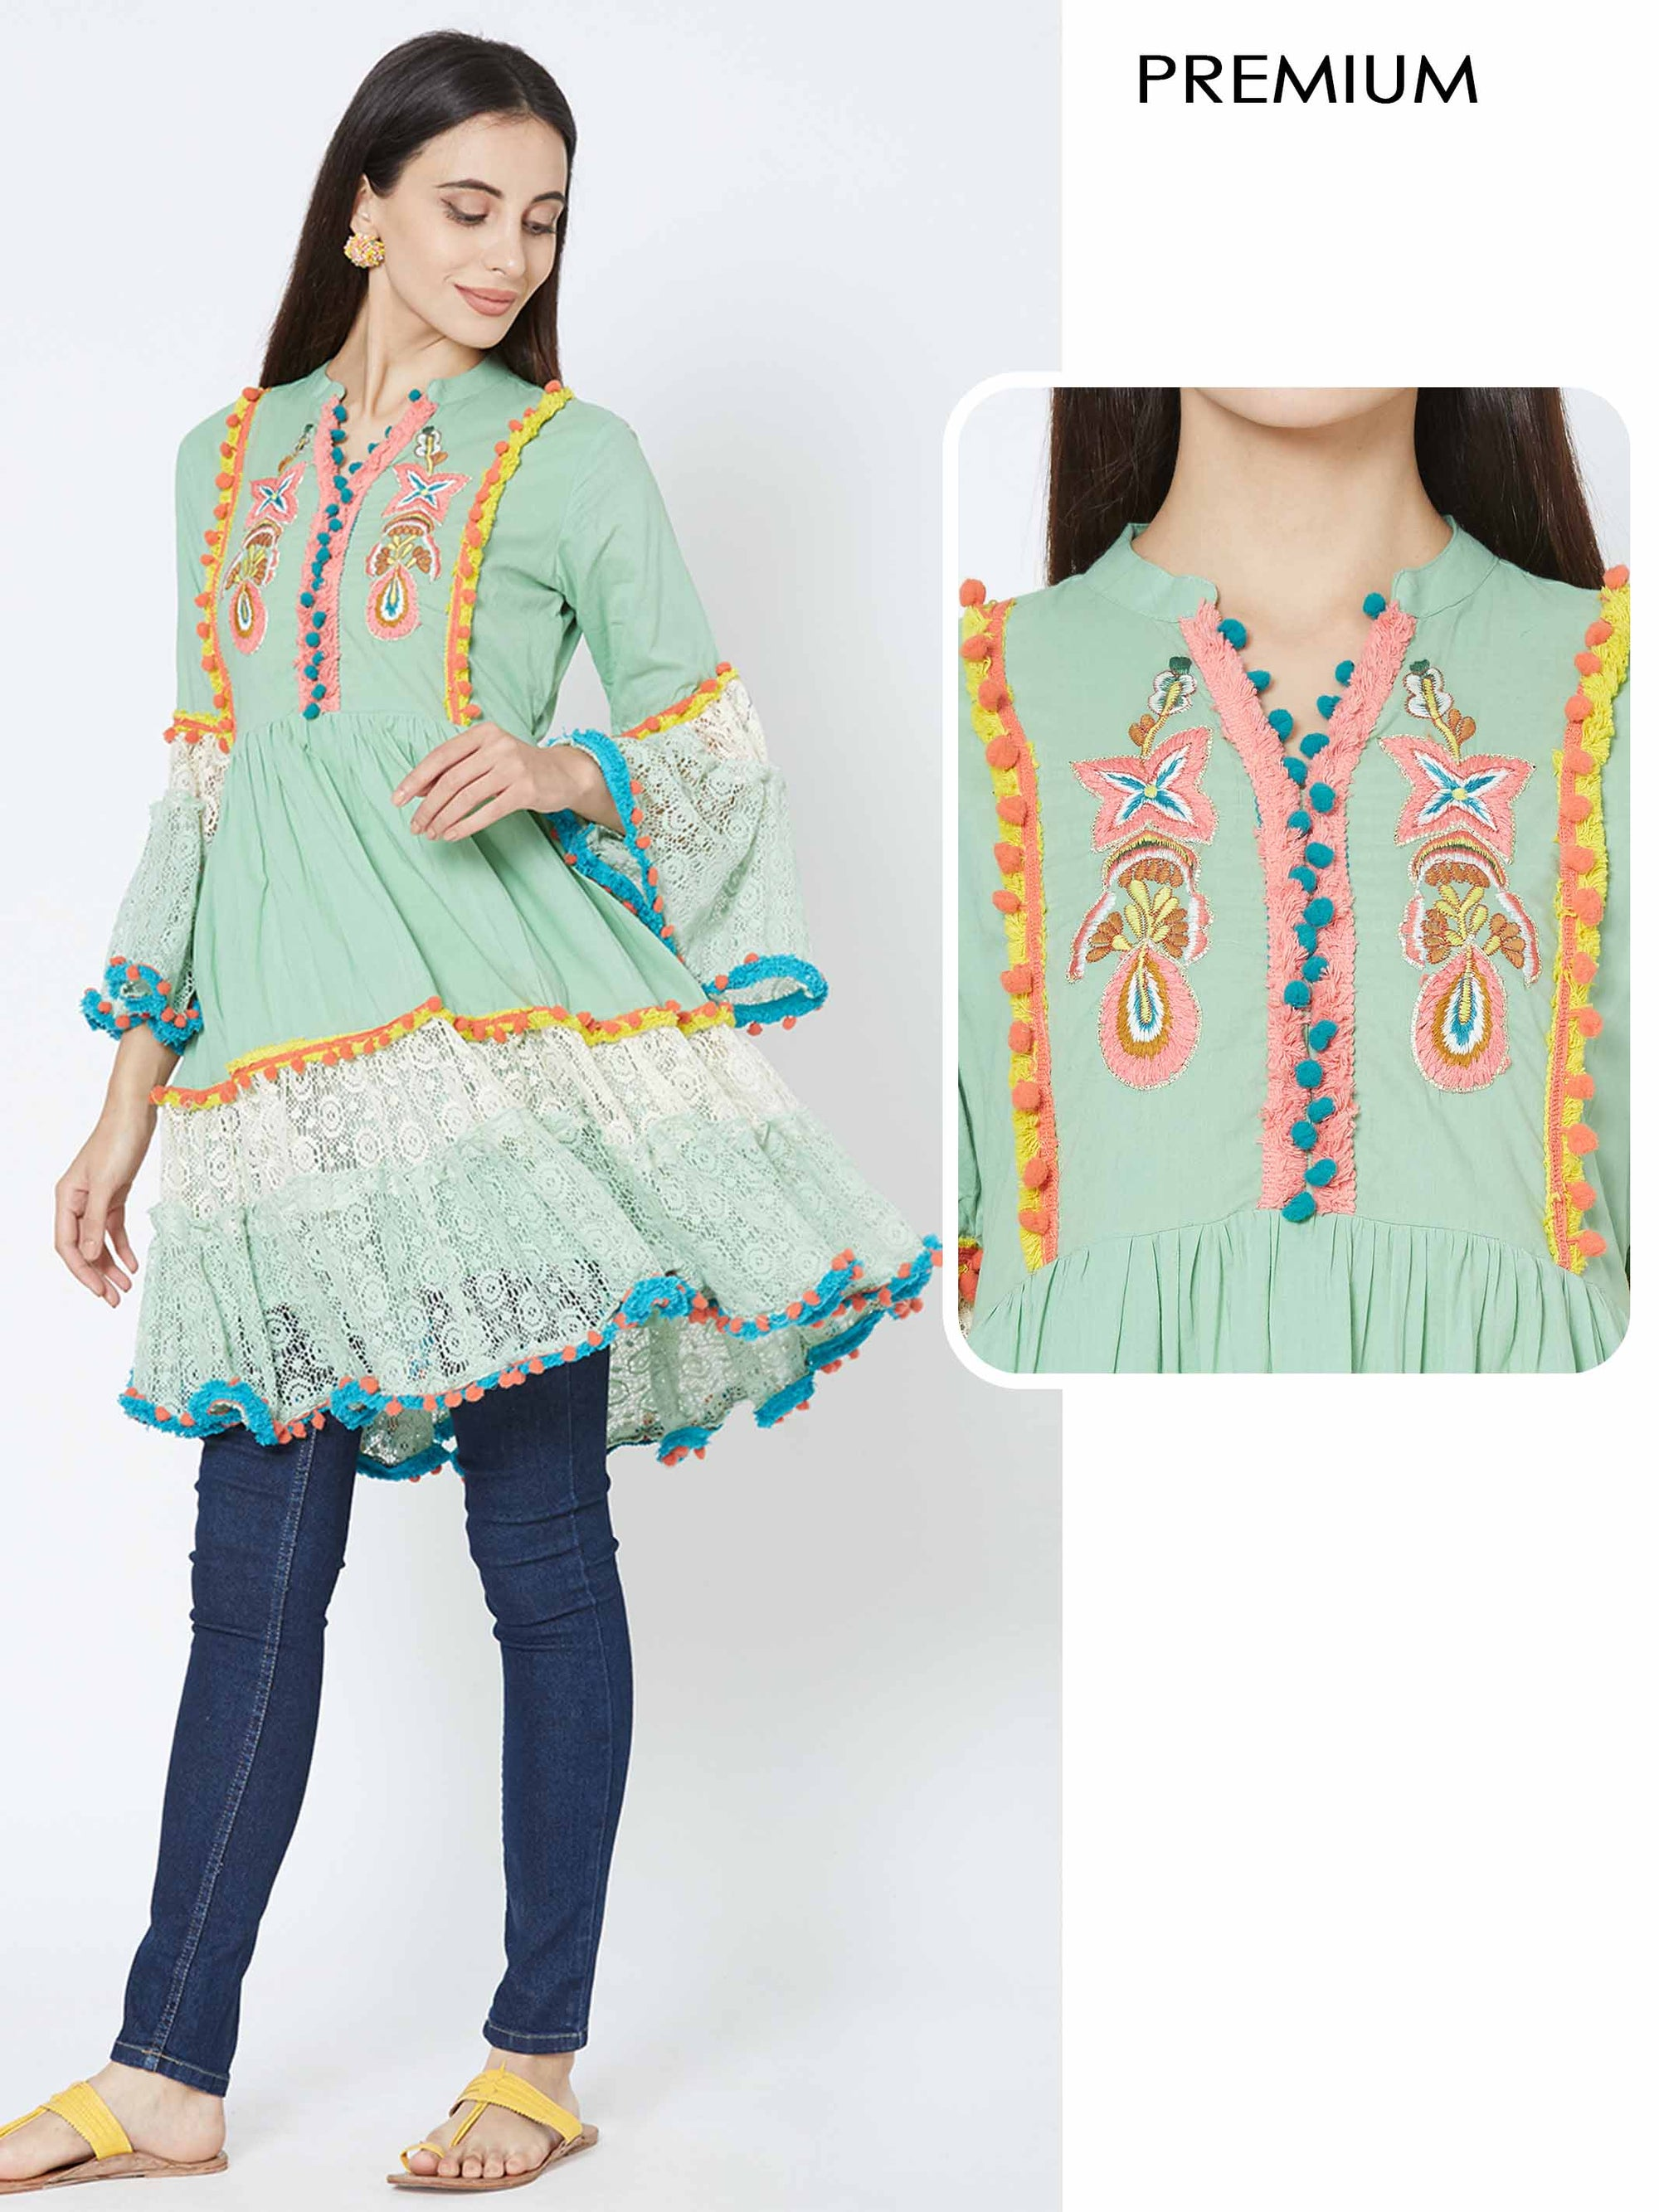 Floral Embroidered & cotton laces Ruffles Kurti – Lime Green